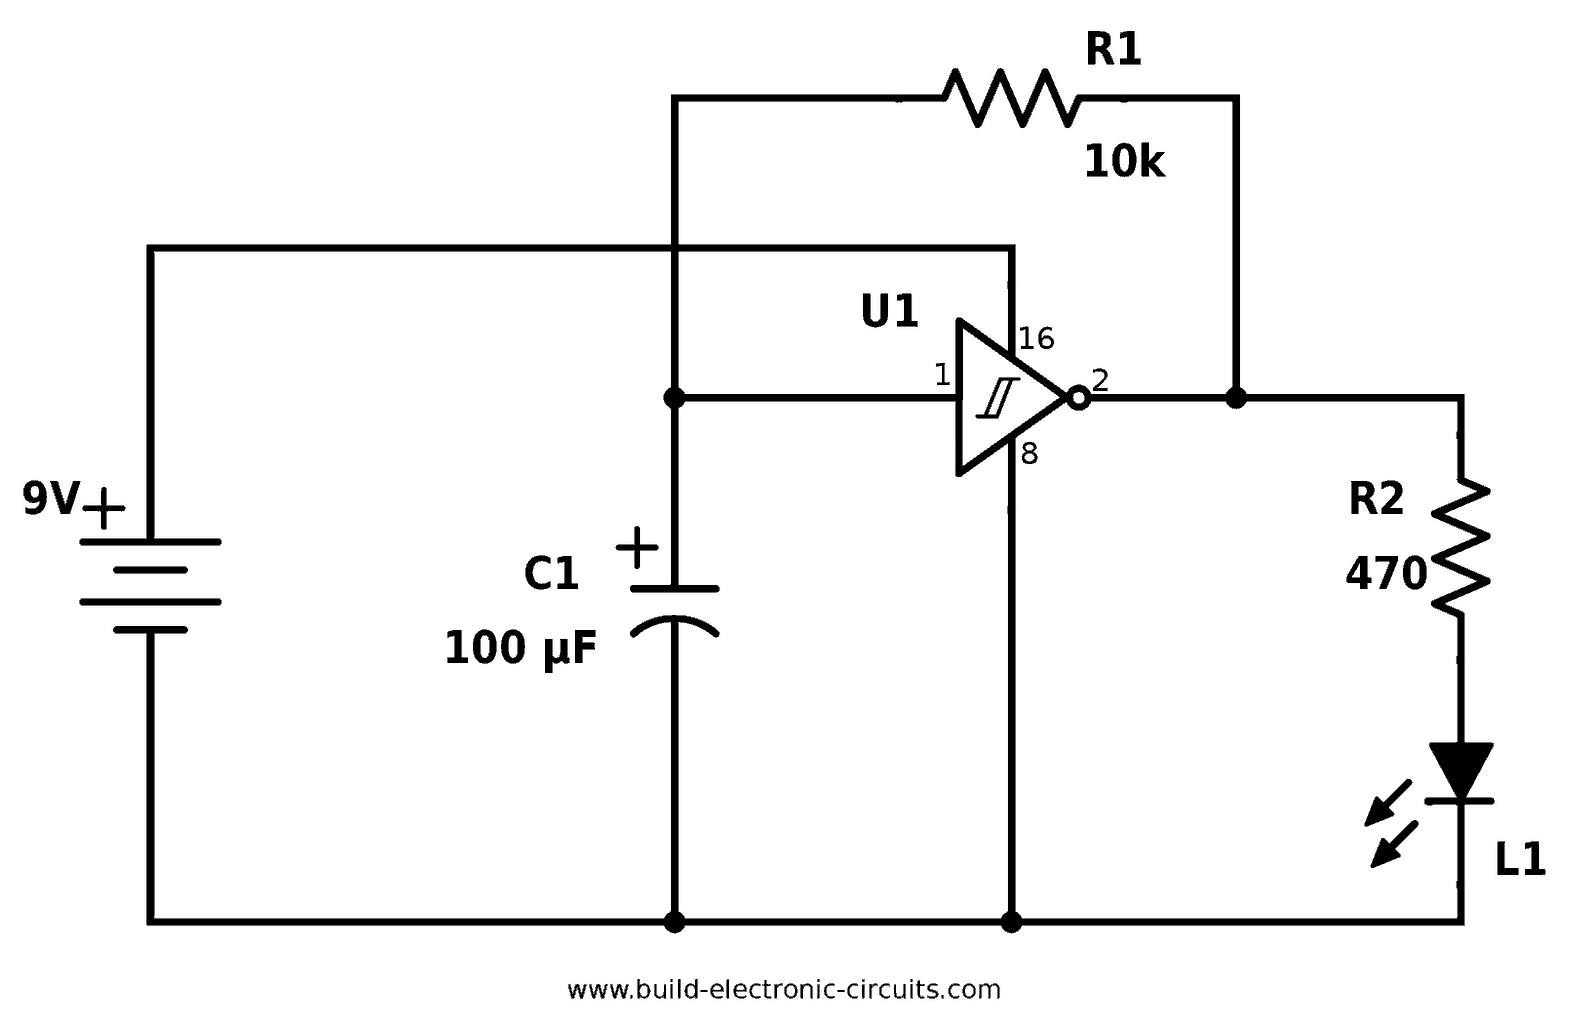 Electrical And Electronics Circuit April 2018 Flashing Leds Is To Use A Single Transistor Or An Inverter This One Of The Easiest Ways Blink Led